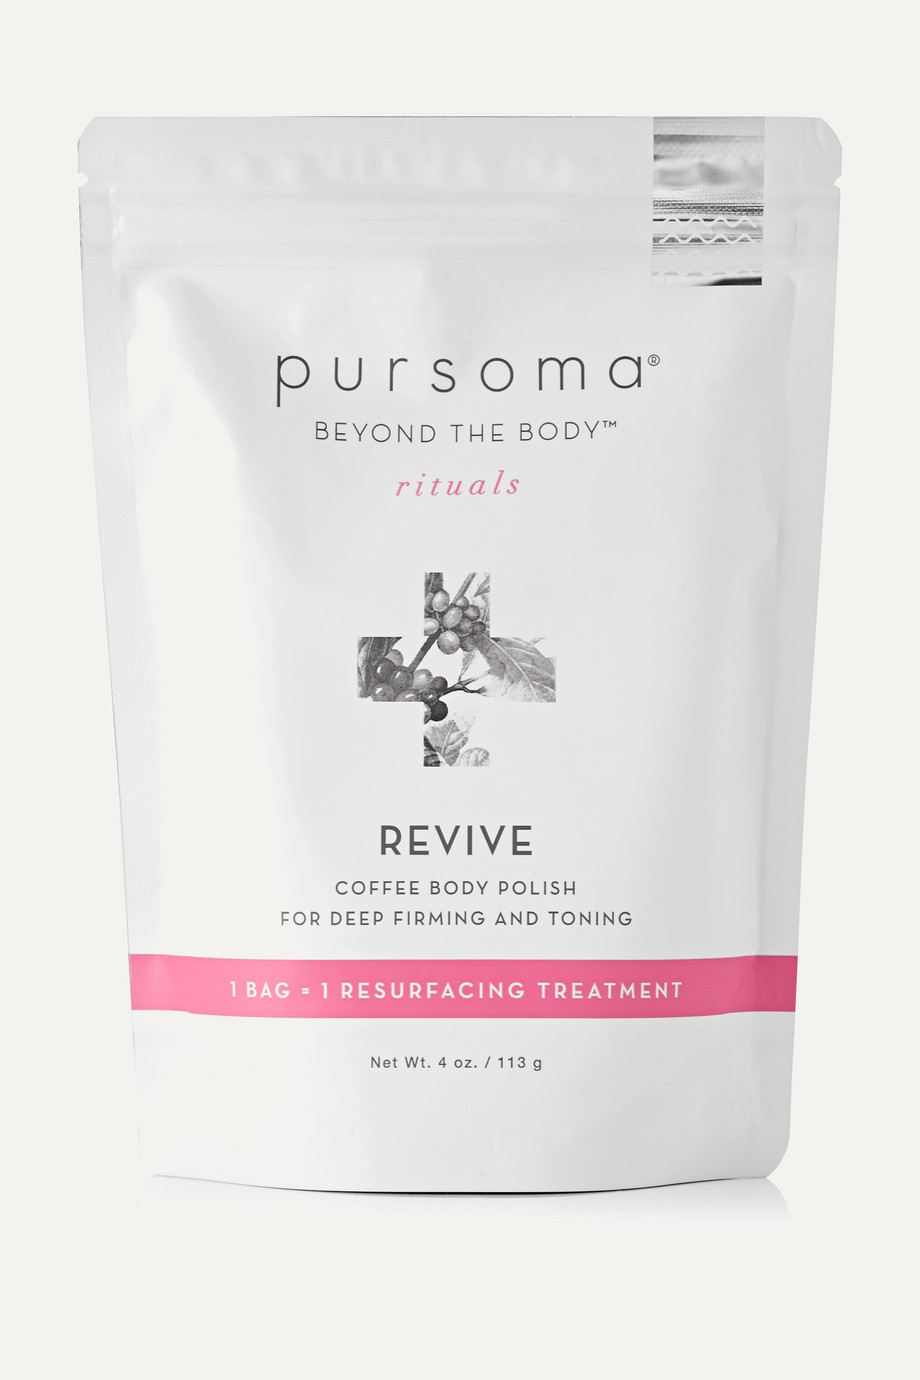 Pursoma Revive Coffee Body Polish, 113g